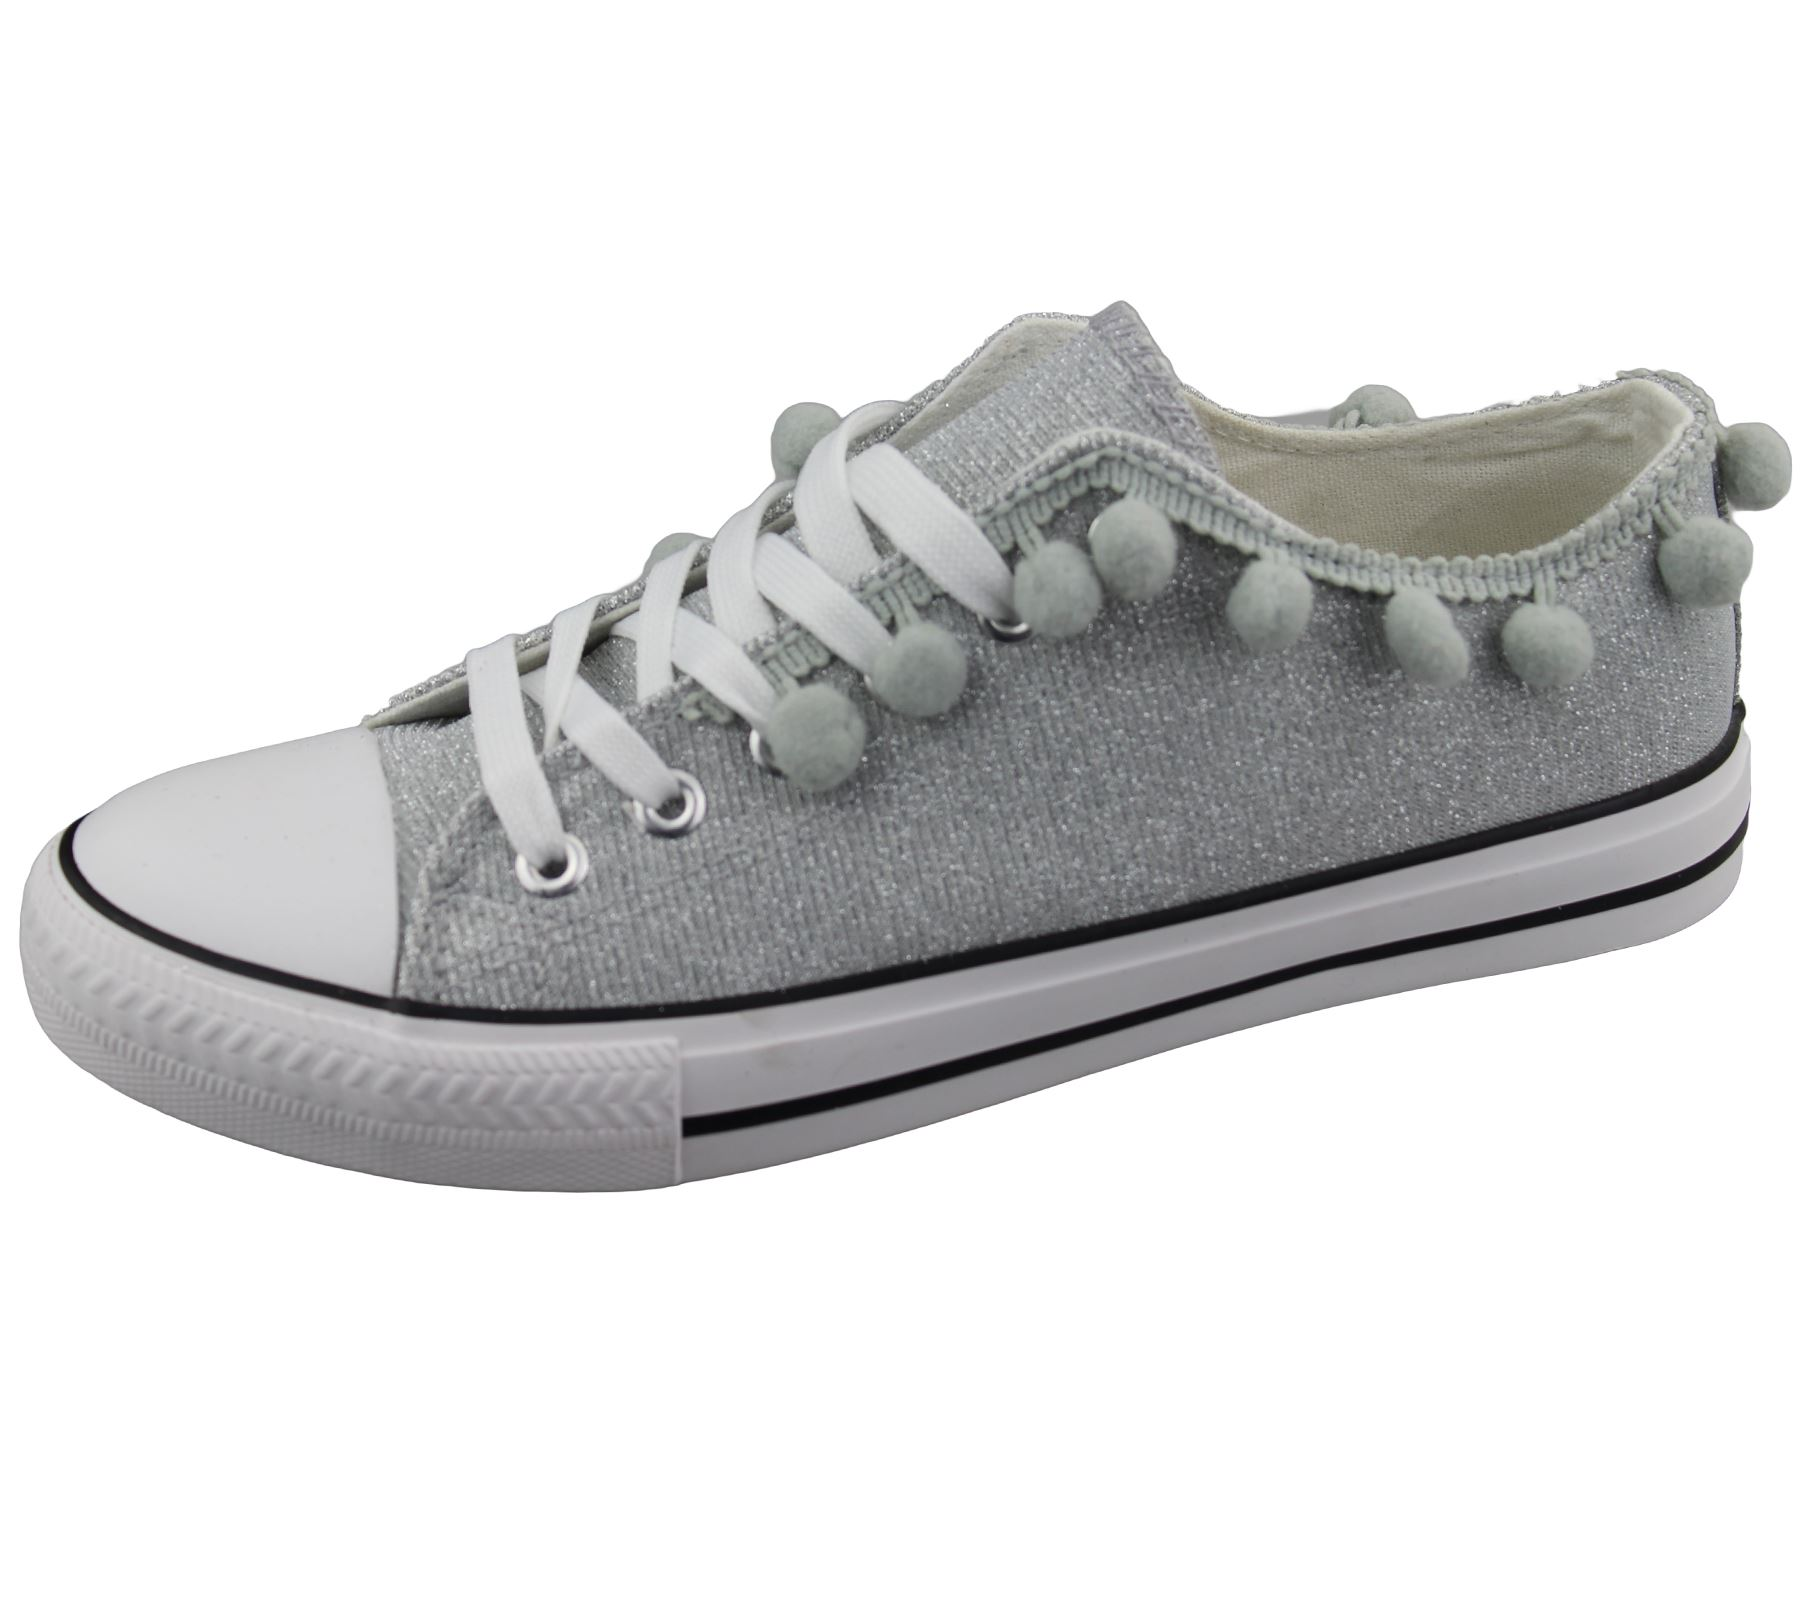 Womens-Sneakers-Flat-Pumps-Ladies-Glittered-Summer-Plimsole-Canvas-Shoes thumbnail 11